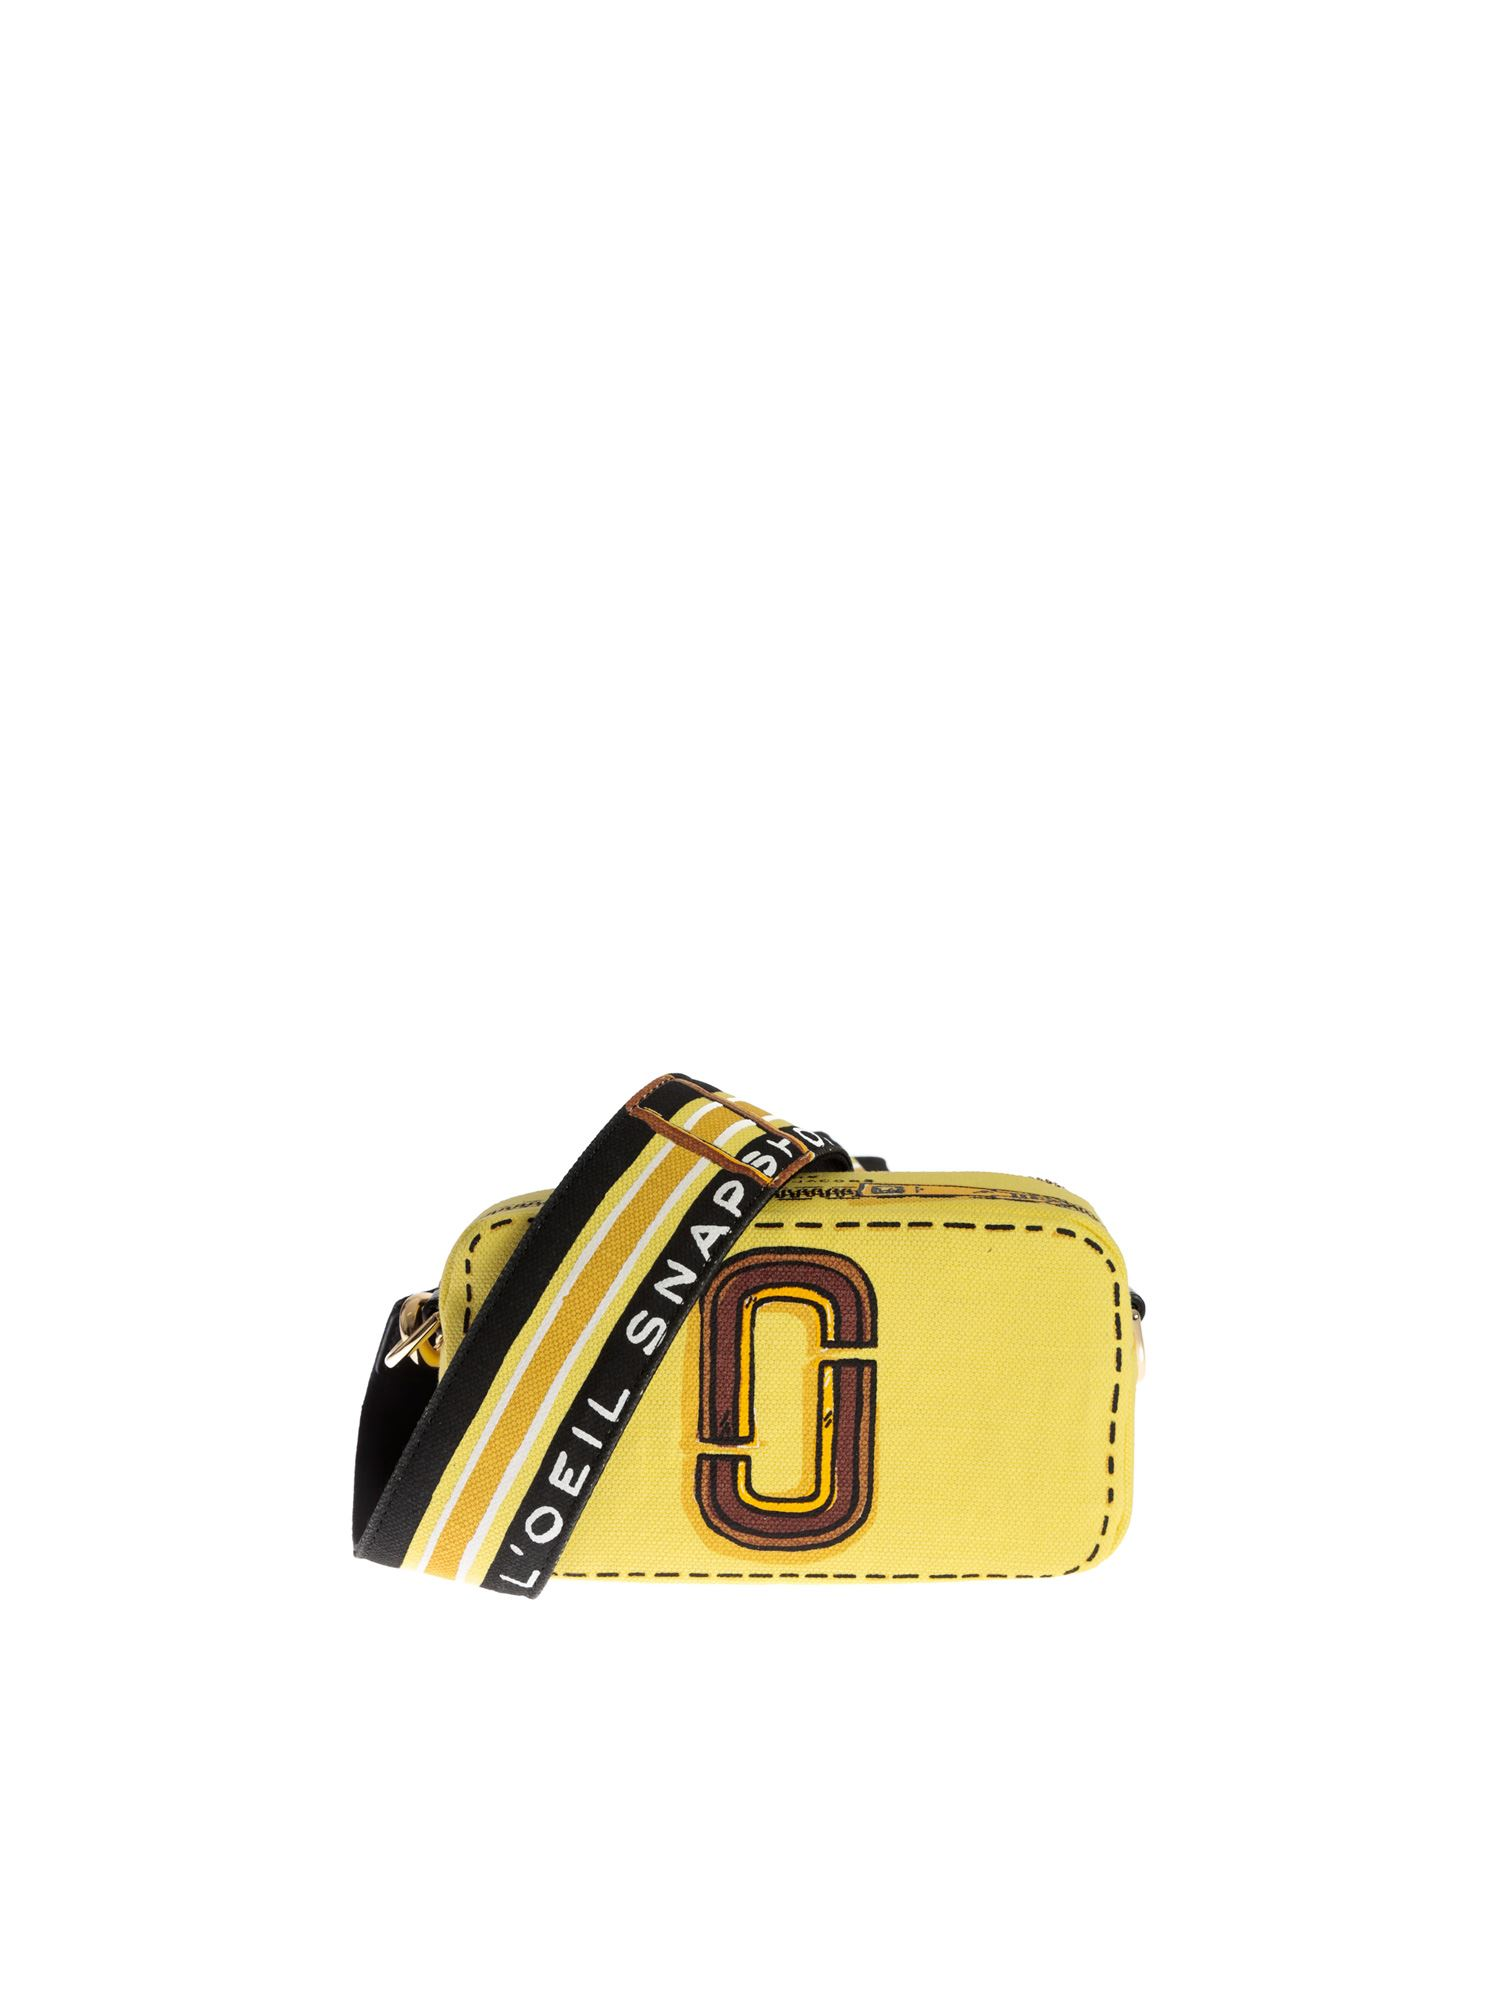 Marc Jacobs THE TROMPE L'OEIL SNAPSHOT BAG IN YELLOW